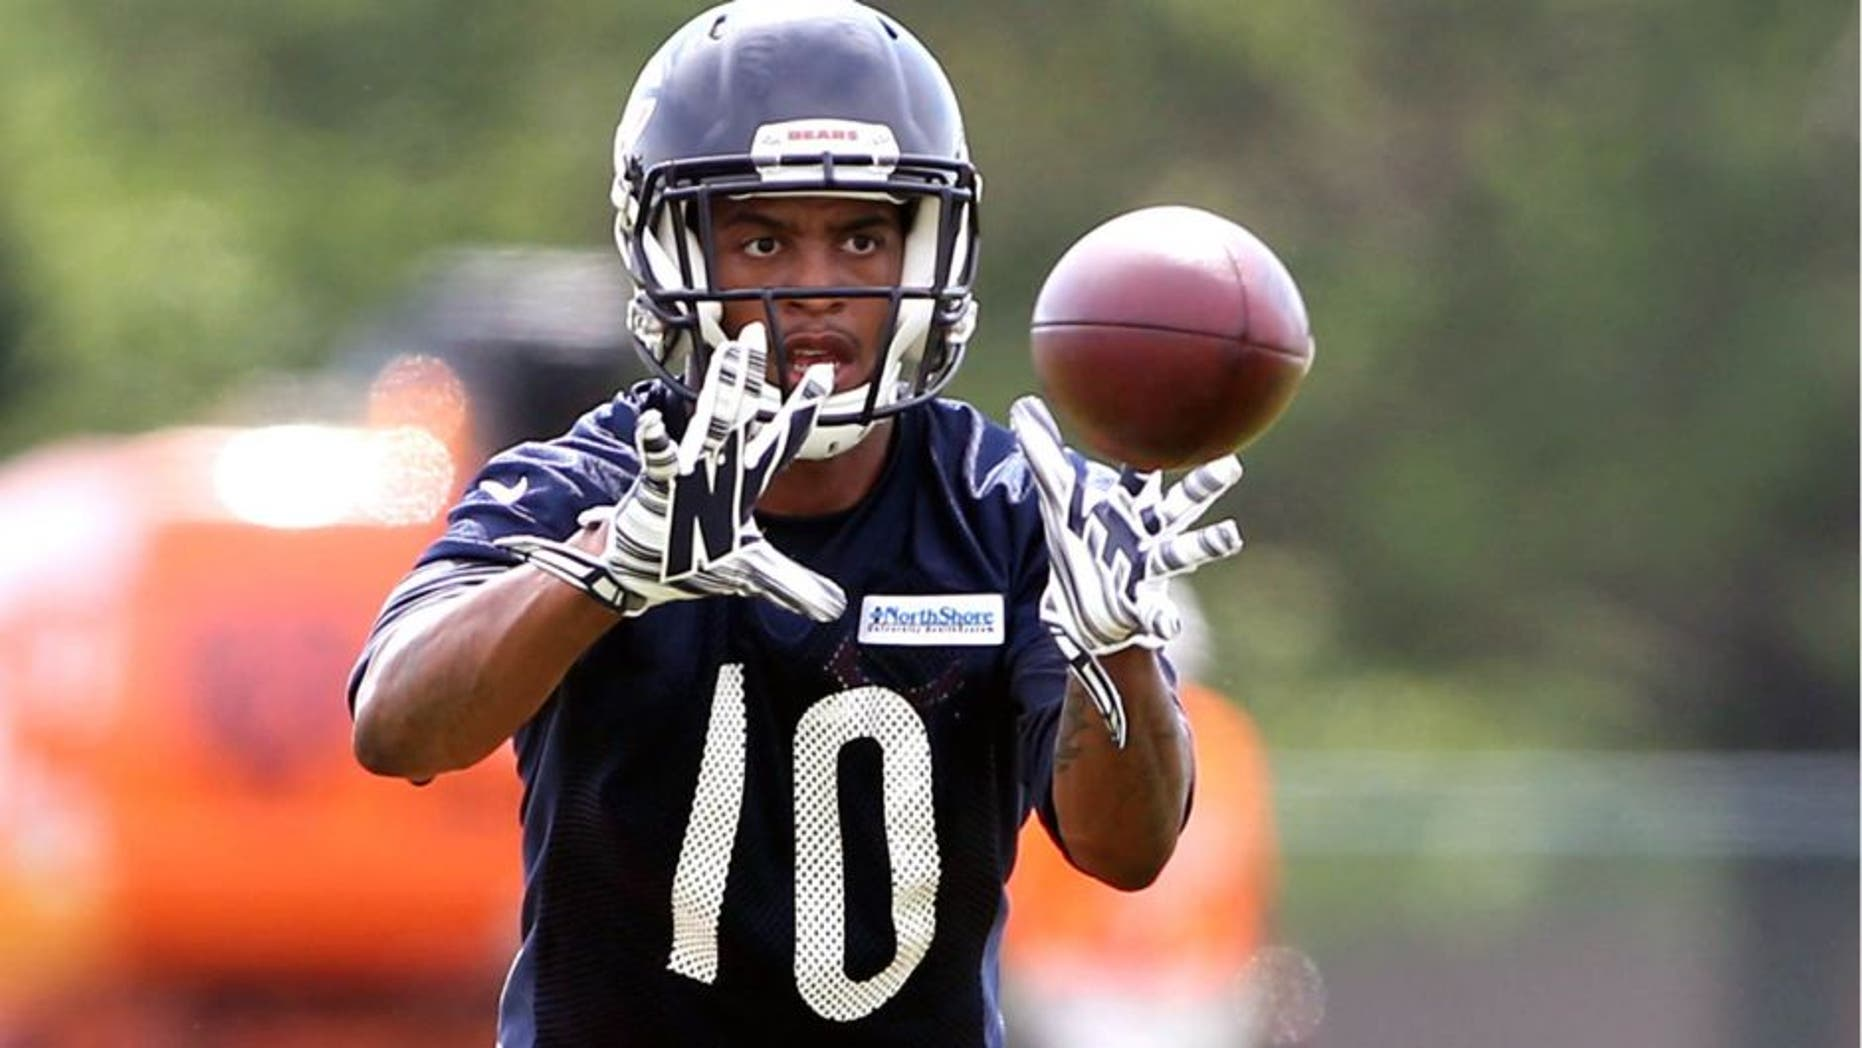 Jul 25, 2014; Chicago, IL, USA; Chicago Bears receiver Marquess Wilson catches a pass during training camp at Olivet Nazarene University. Mandatory Credit: Jerry Lai-USA TODAY Sports